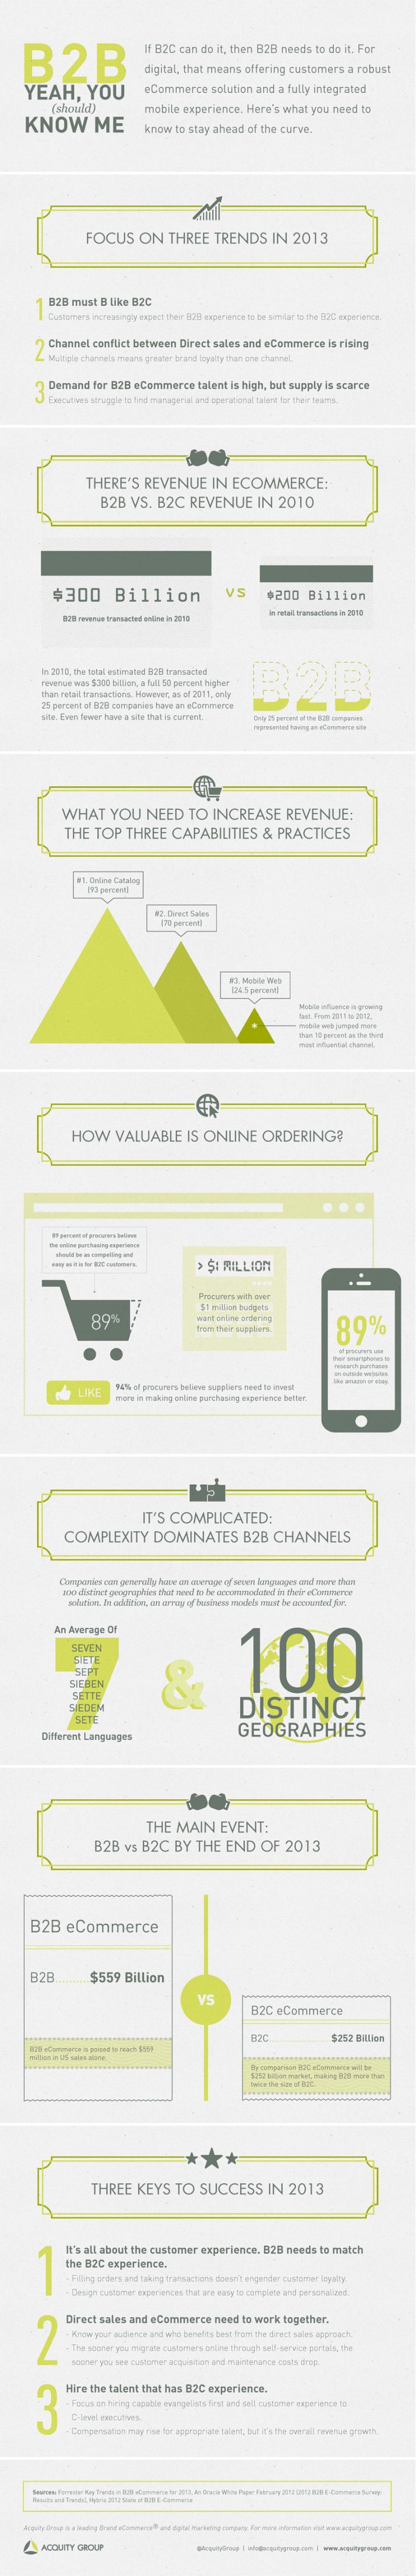 agm_b2beCommerce-infographic_g-sm